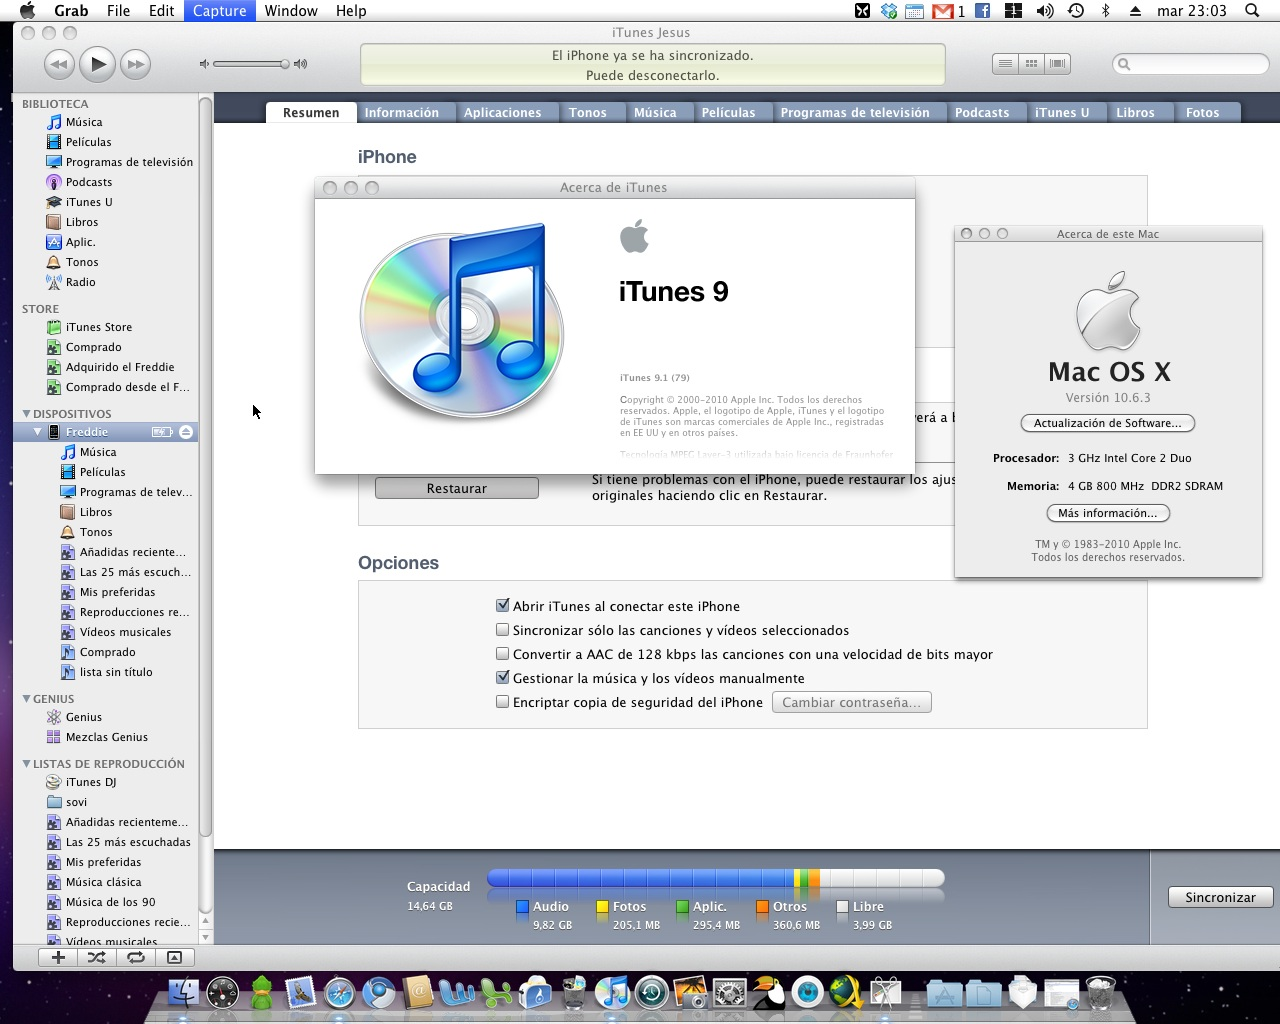 telecharger itunes 10.6.3 gratuit